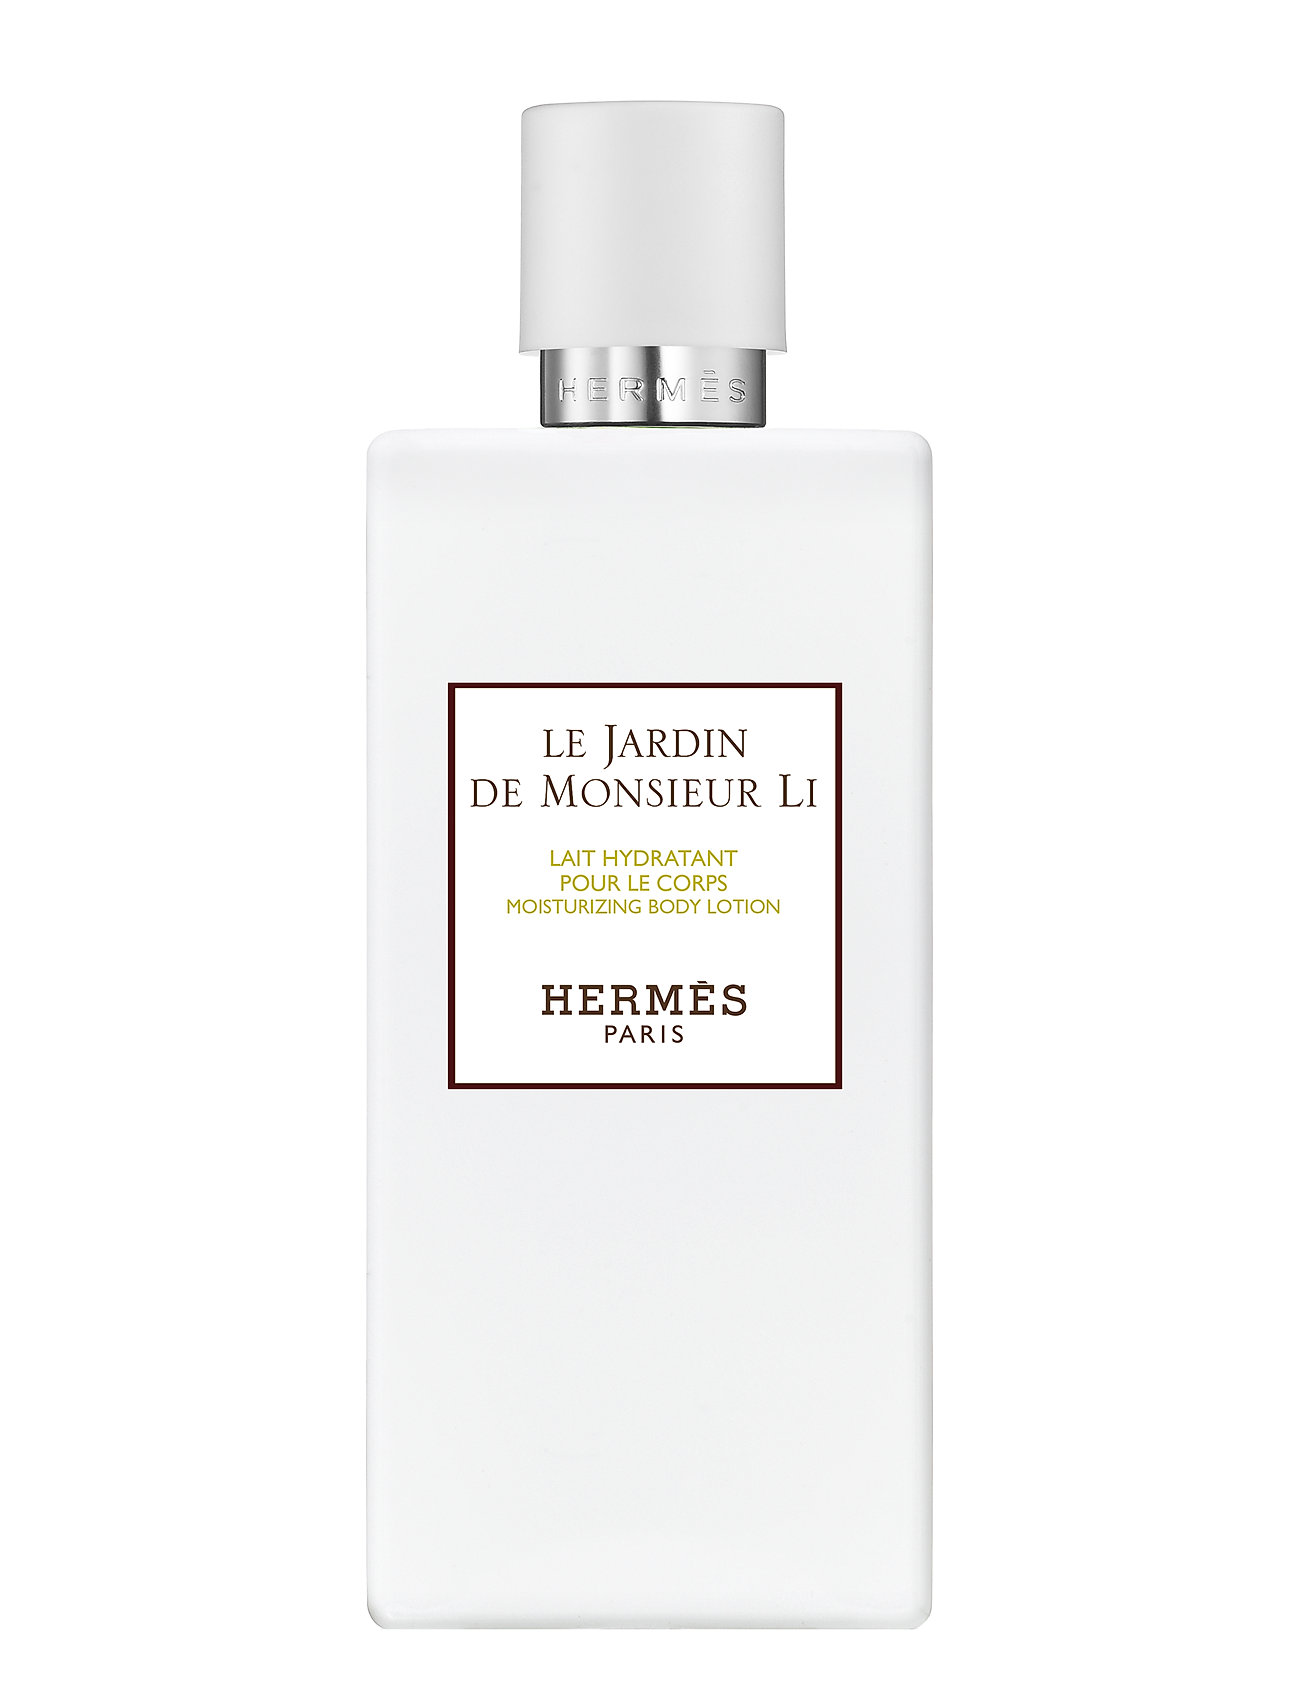 Image of Le Jardin De Monsieur Li, Perfumed Body Lotion Beauty WOMEN Skin Care Body Body Lotion Nude HERMÈS (3121114375)